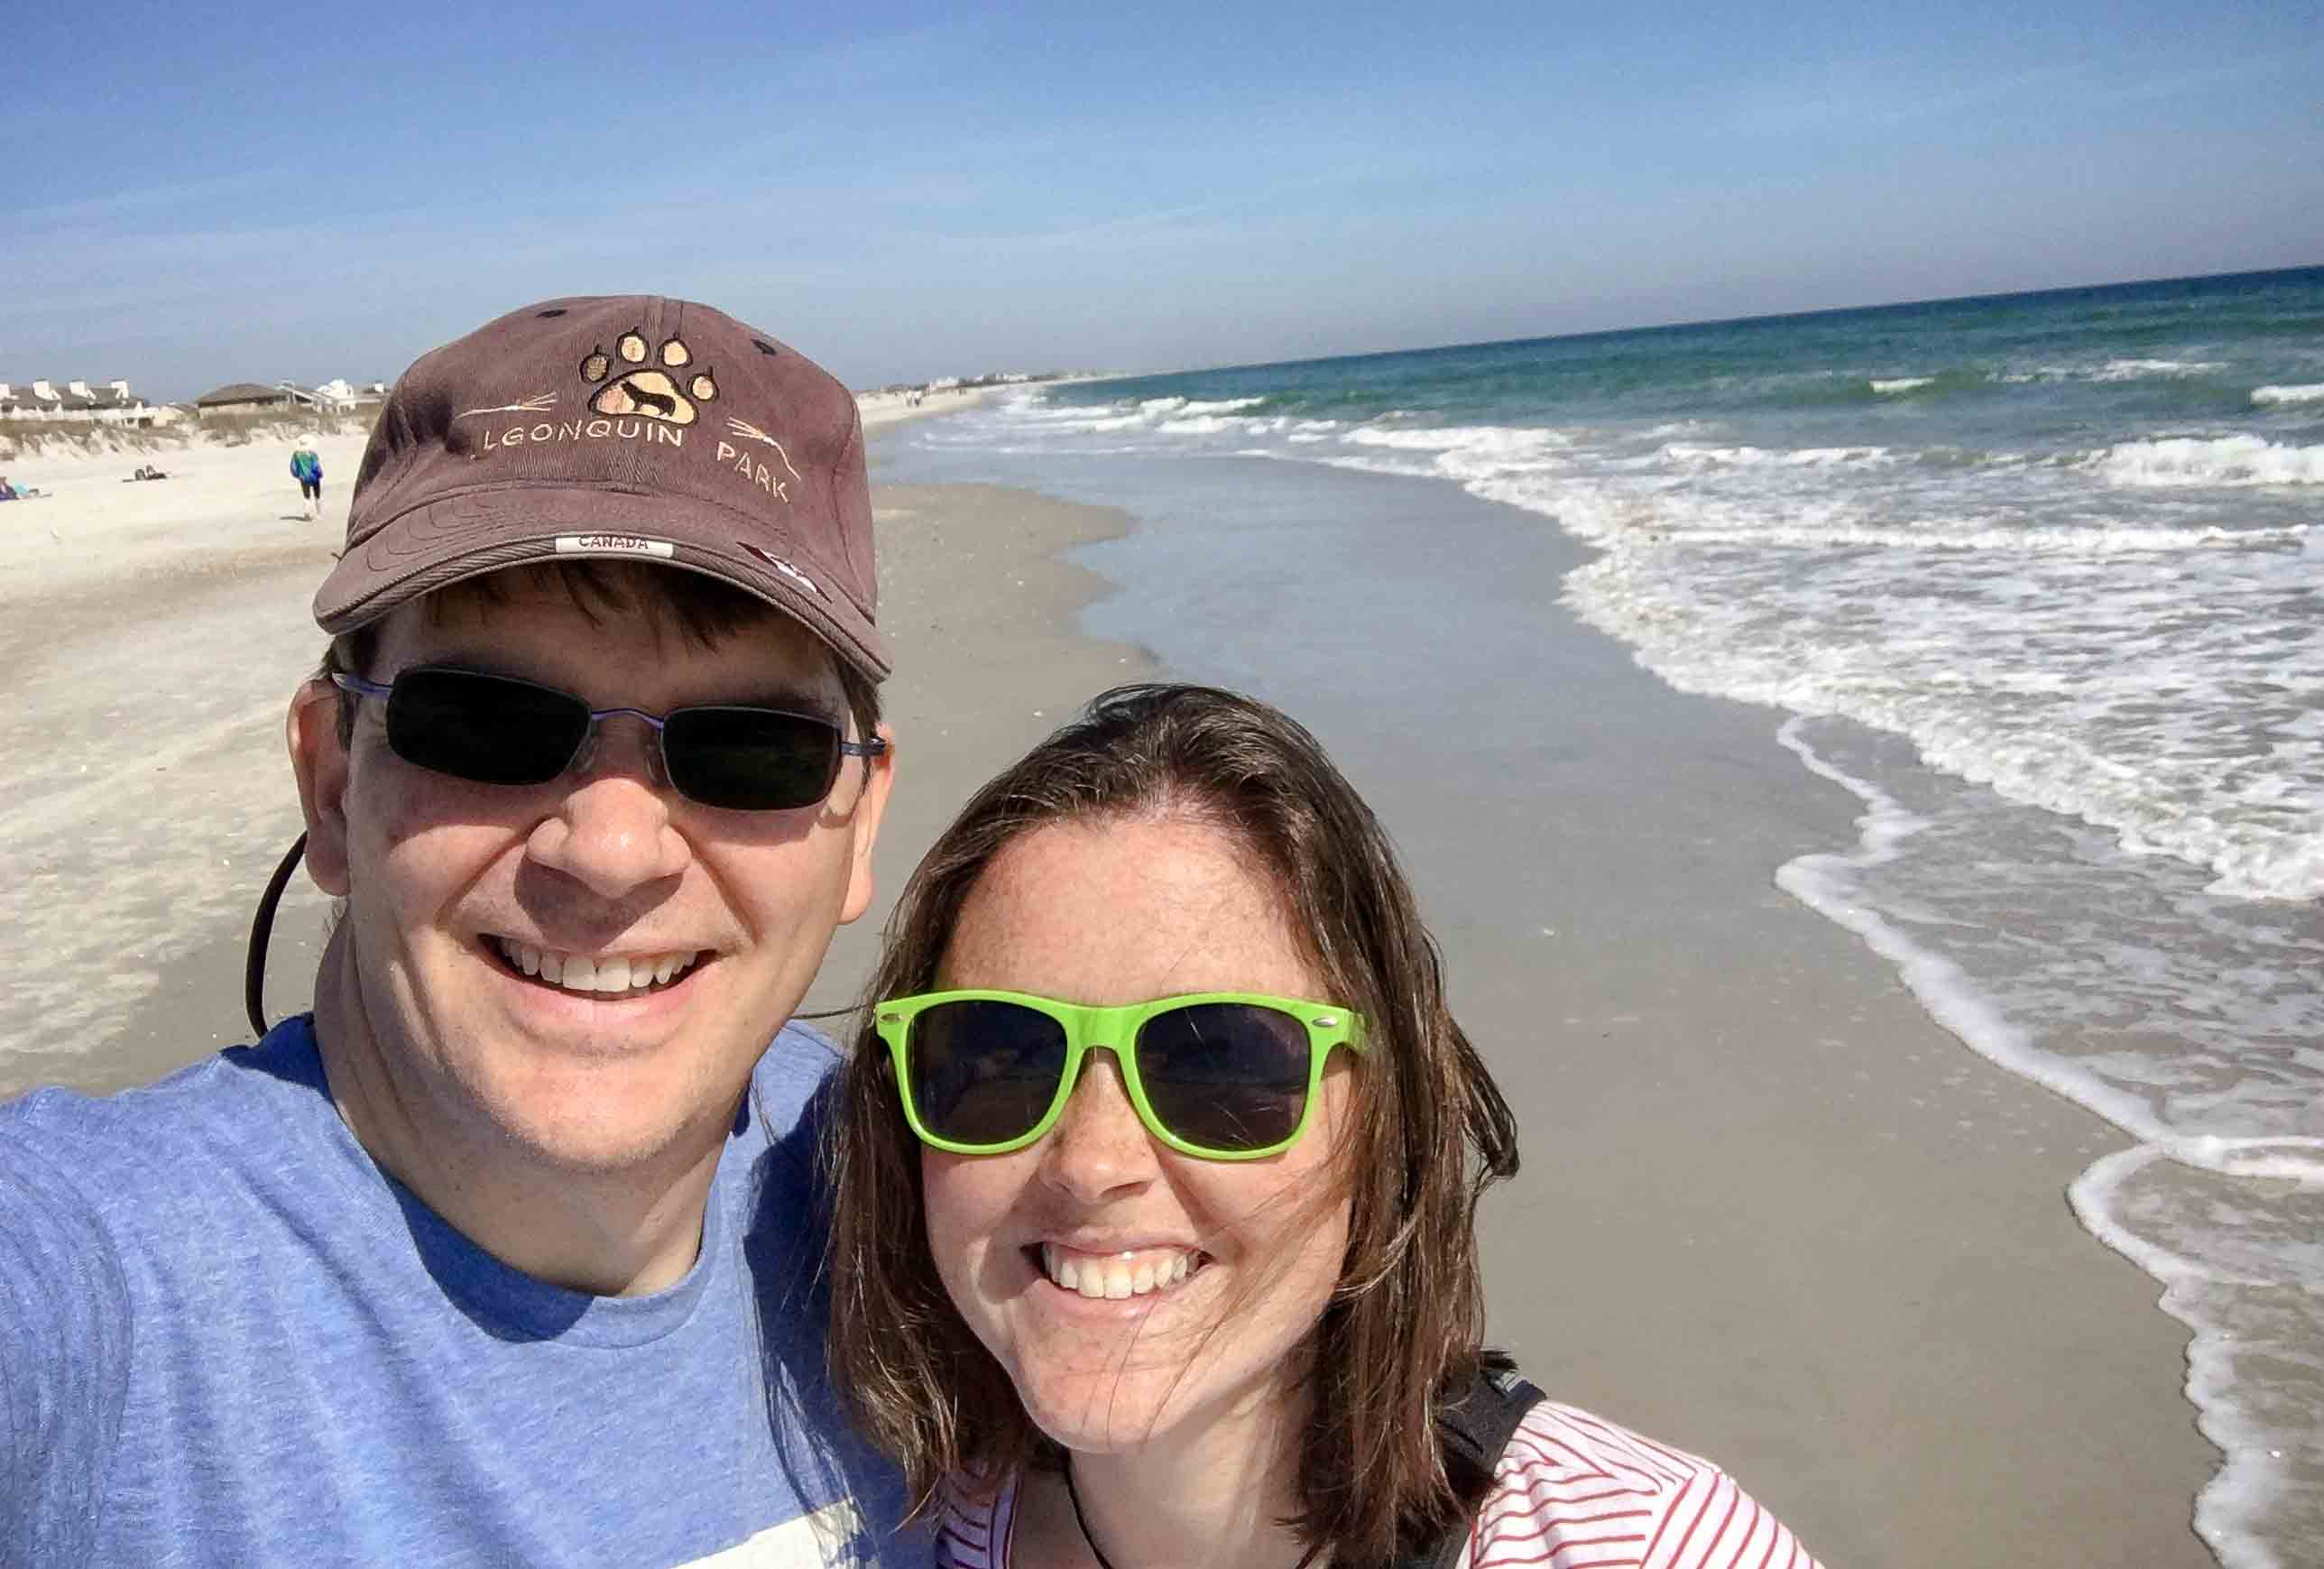 Nothing beats a day trip to the beach on a warm February day!